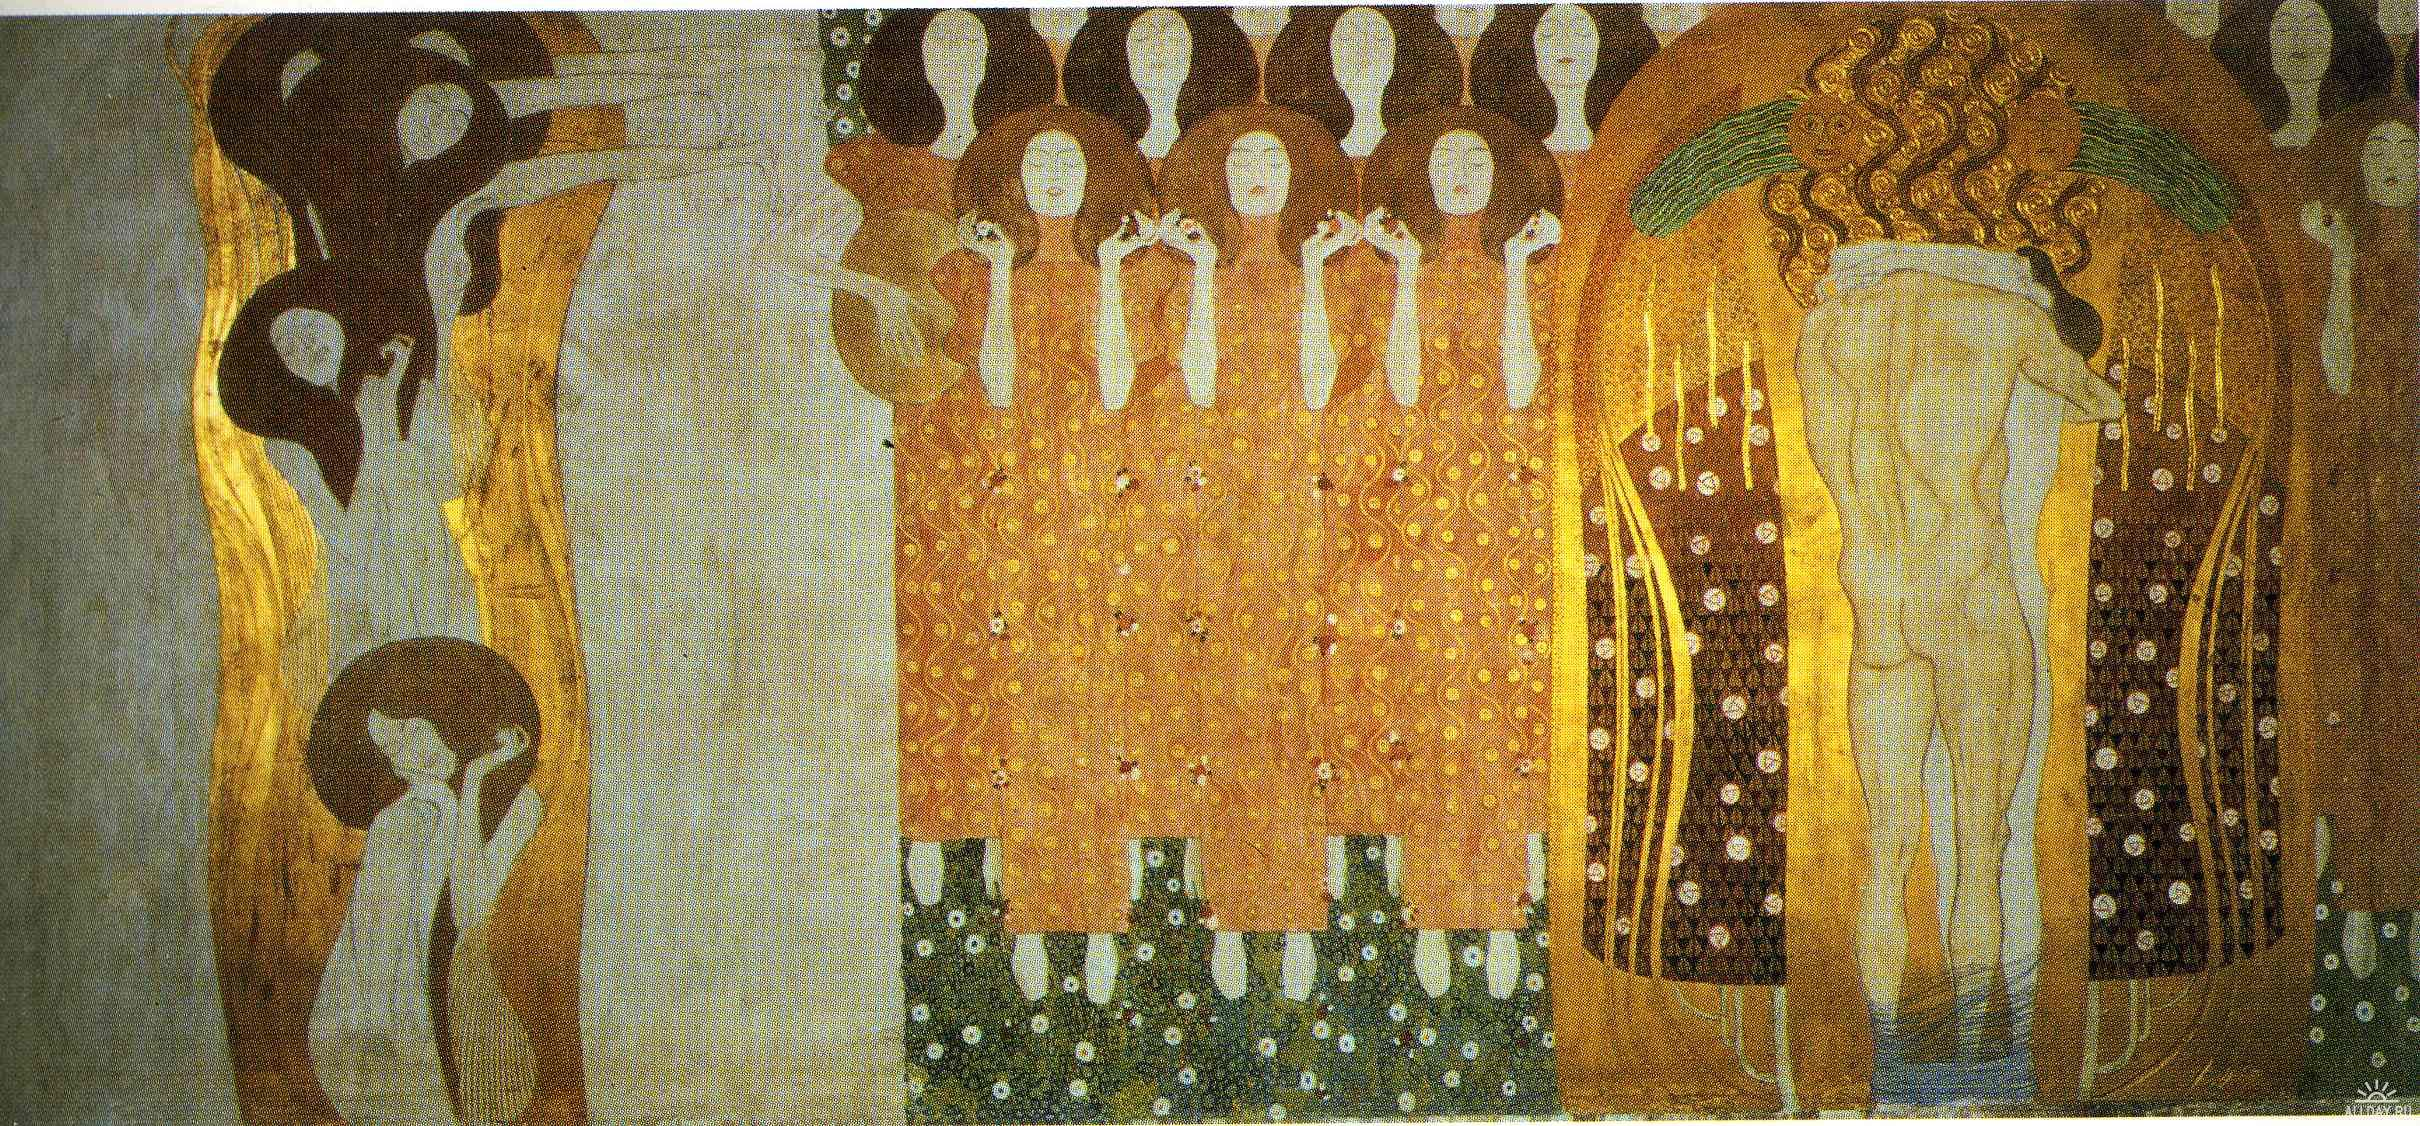 Gustav Klimt - The Beethoven Frieze. The Longing for Happiness Finds Repose in Poetry. Right wall 1902